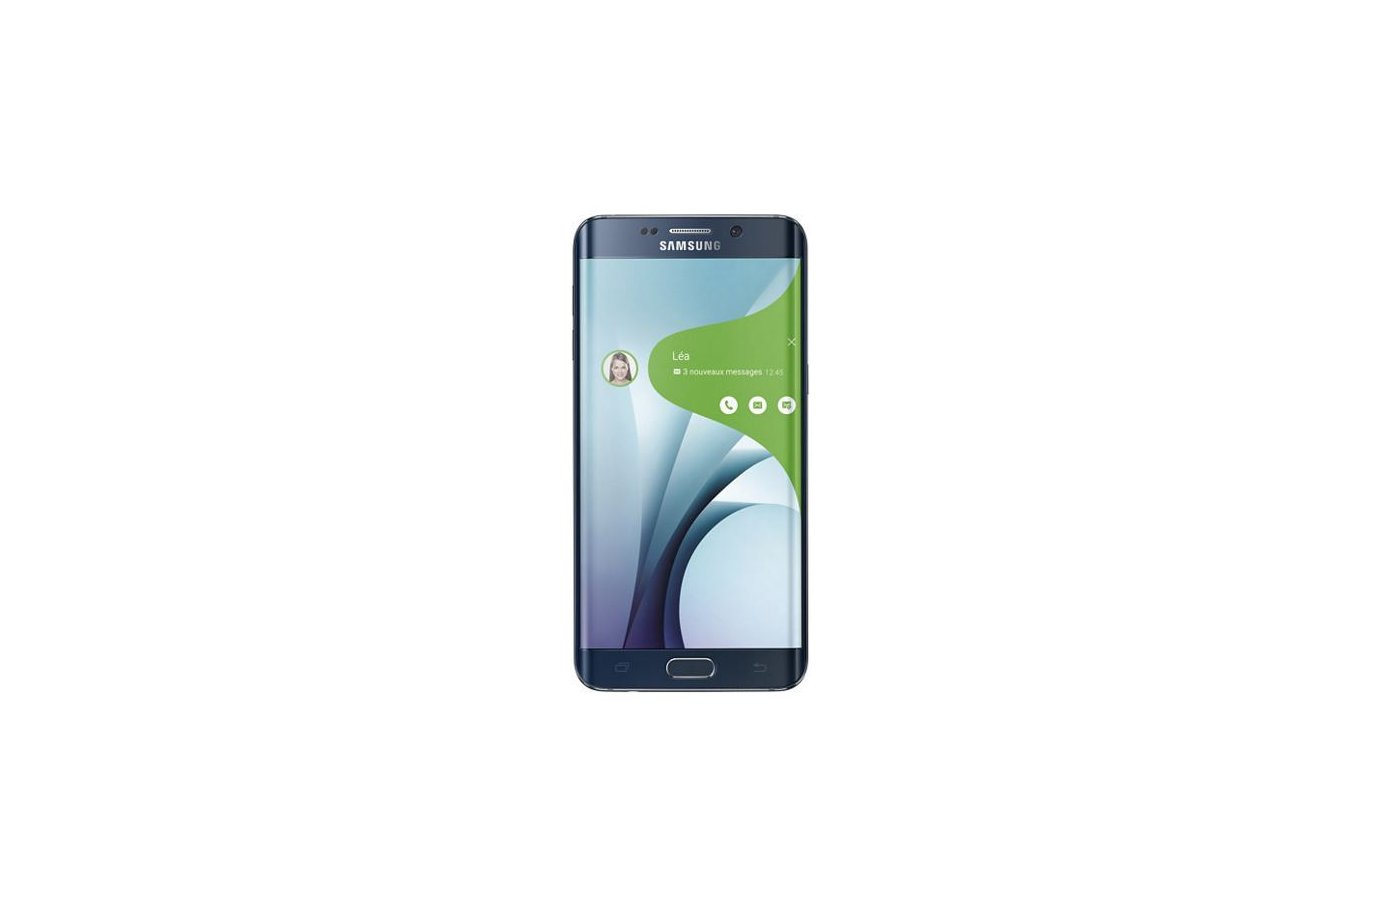 Смартфон Samsung SM-G928F Galaxy S6 Edge+ 32Gb black